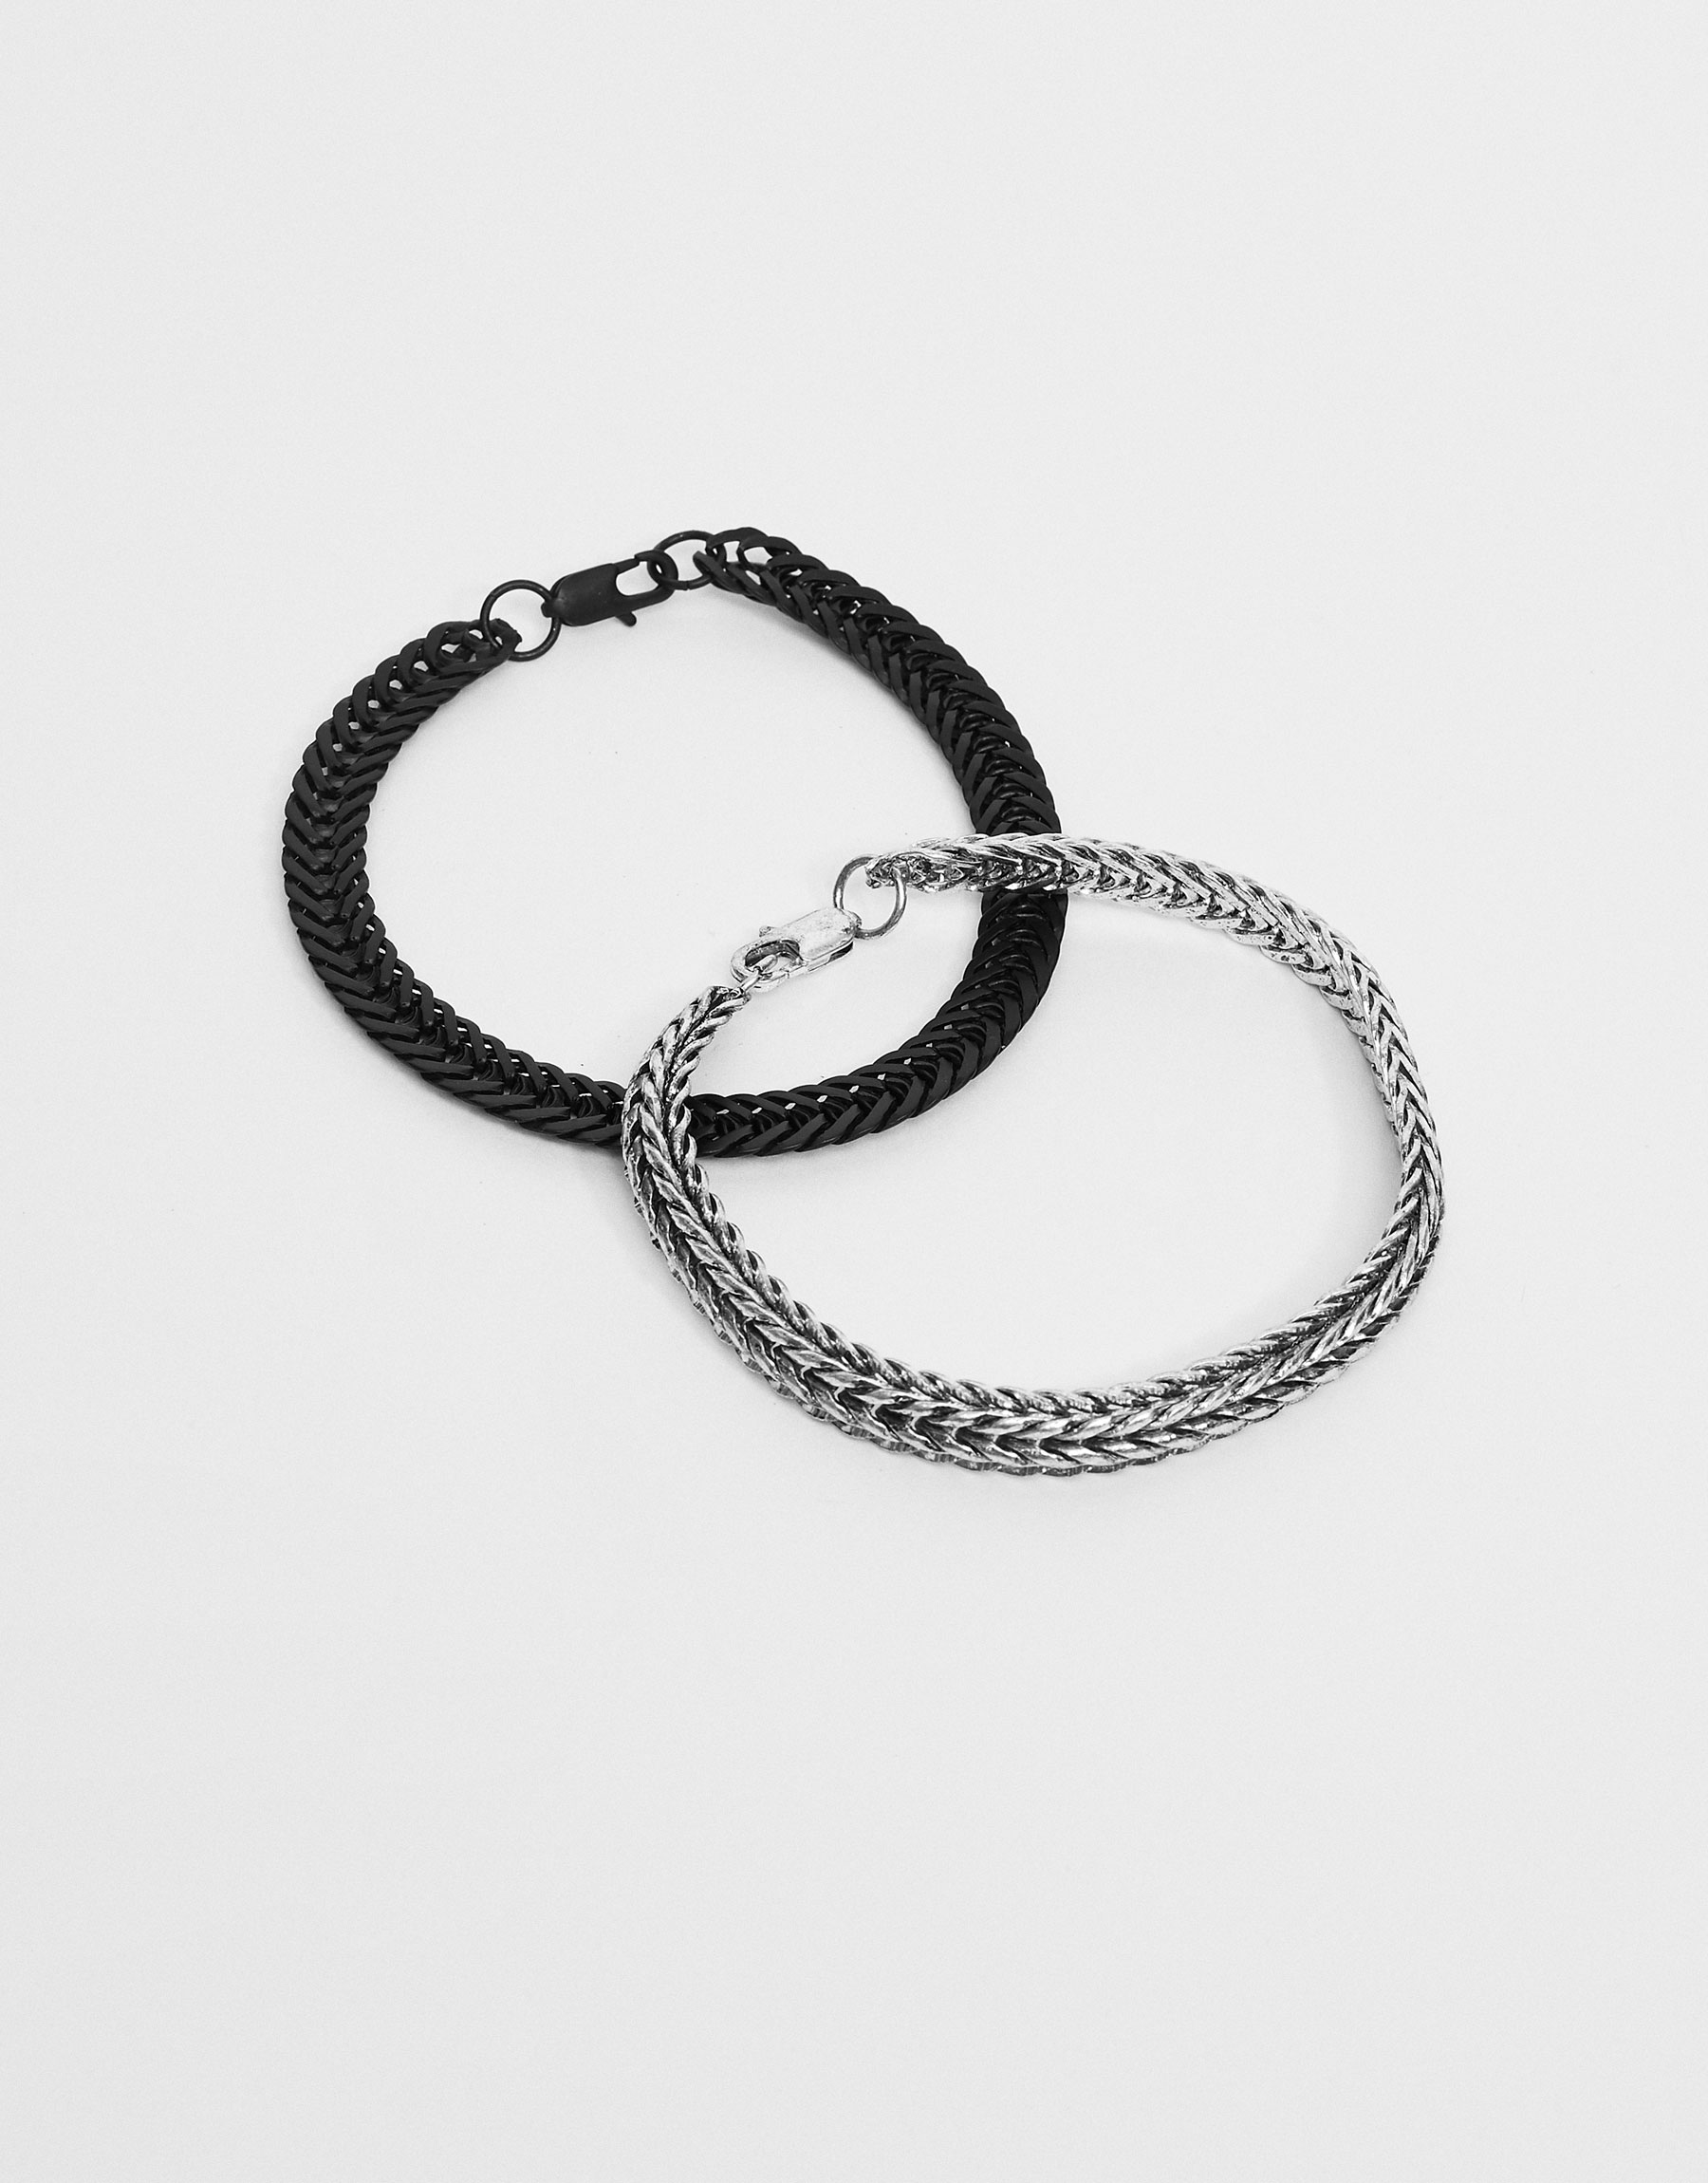 Black and metallic bracelets